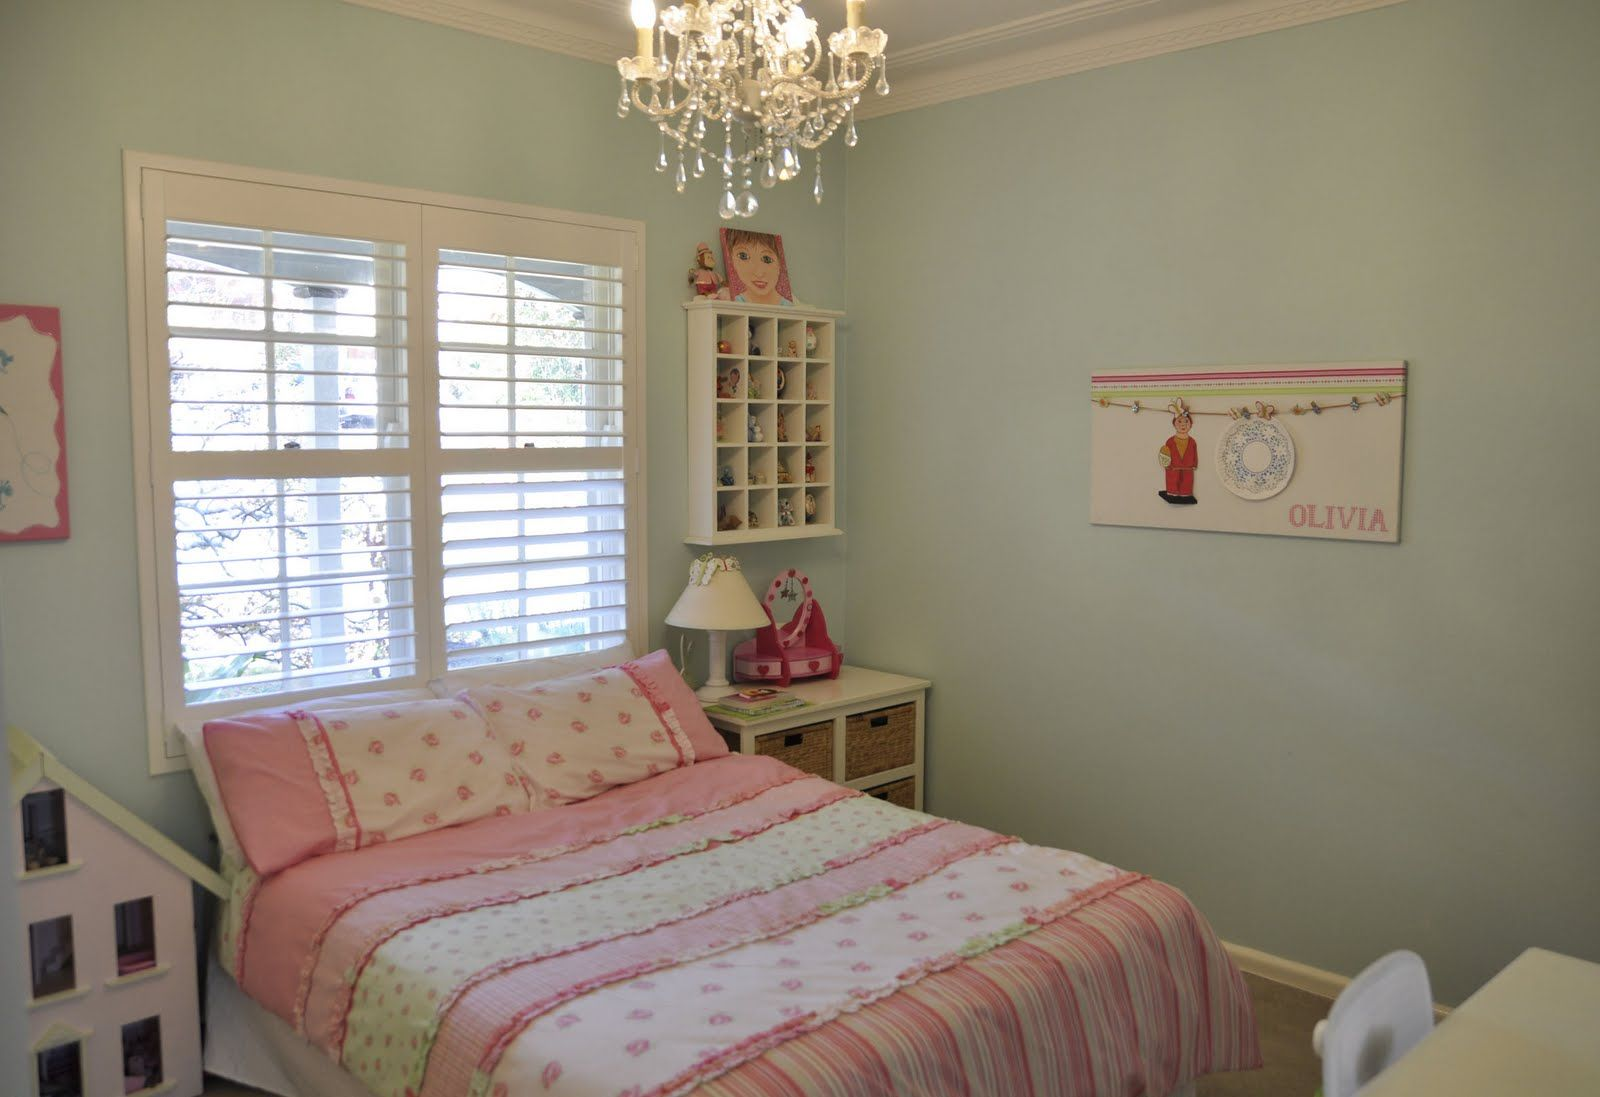 Merveilleux 34 Girls Room Decor Ideas To Change The Feel Of The Room